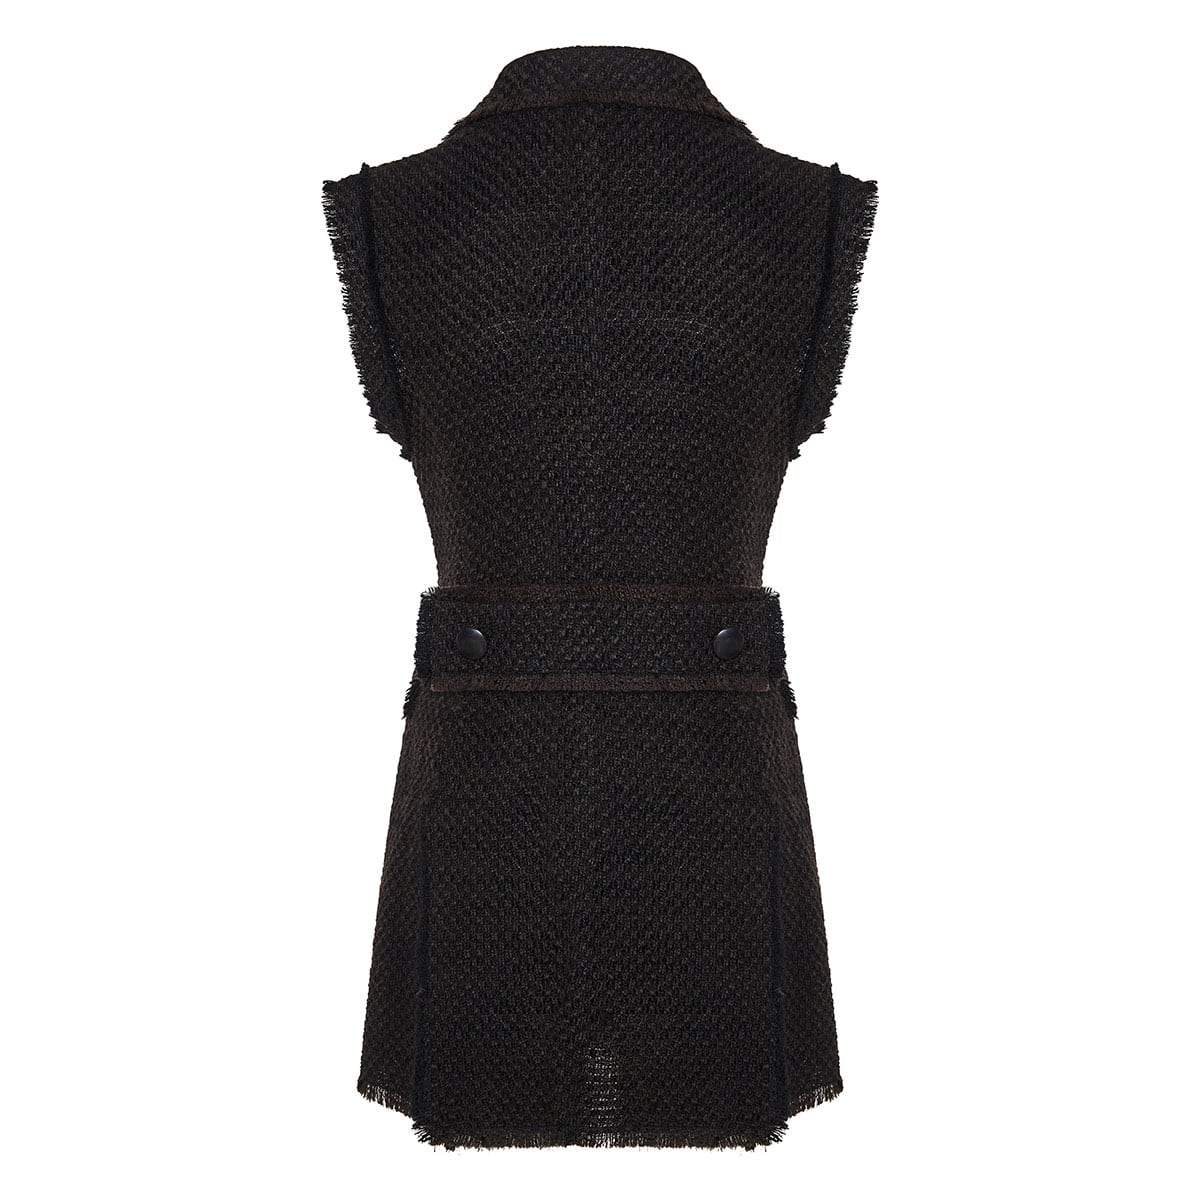 Double-breasted tweed blazer dress